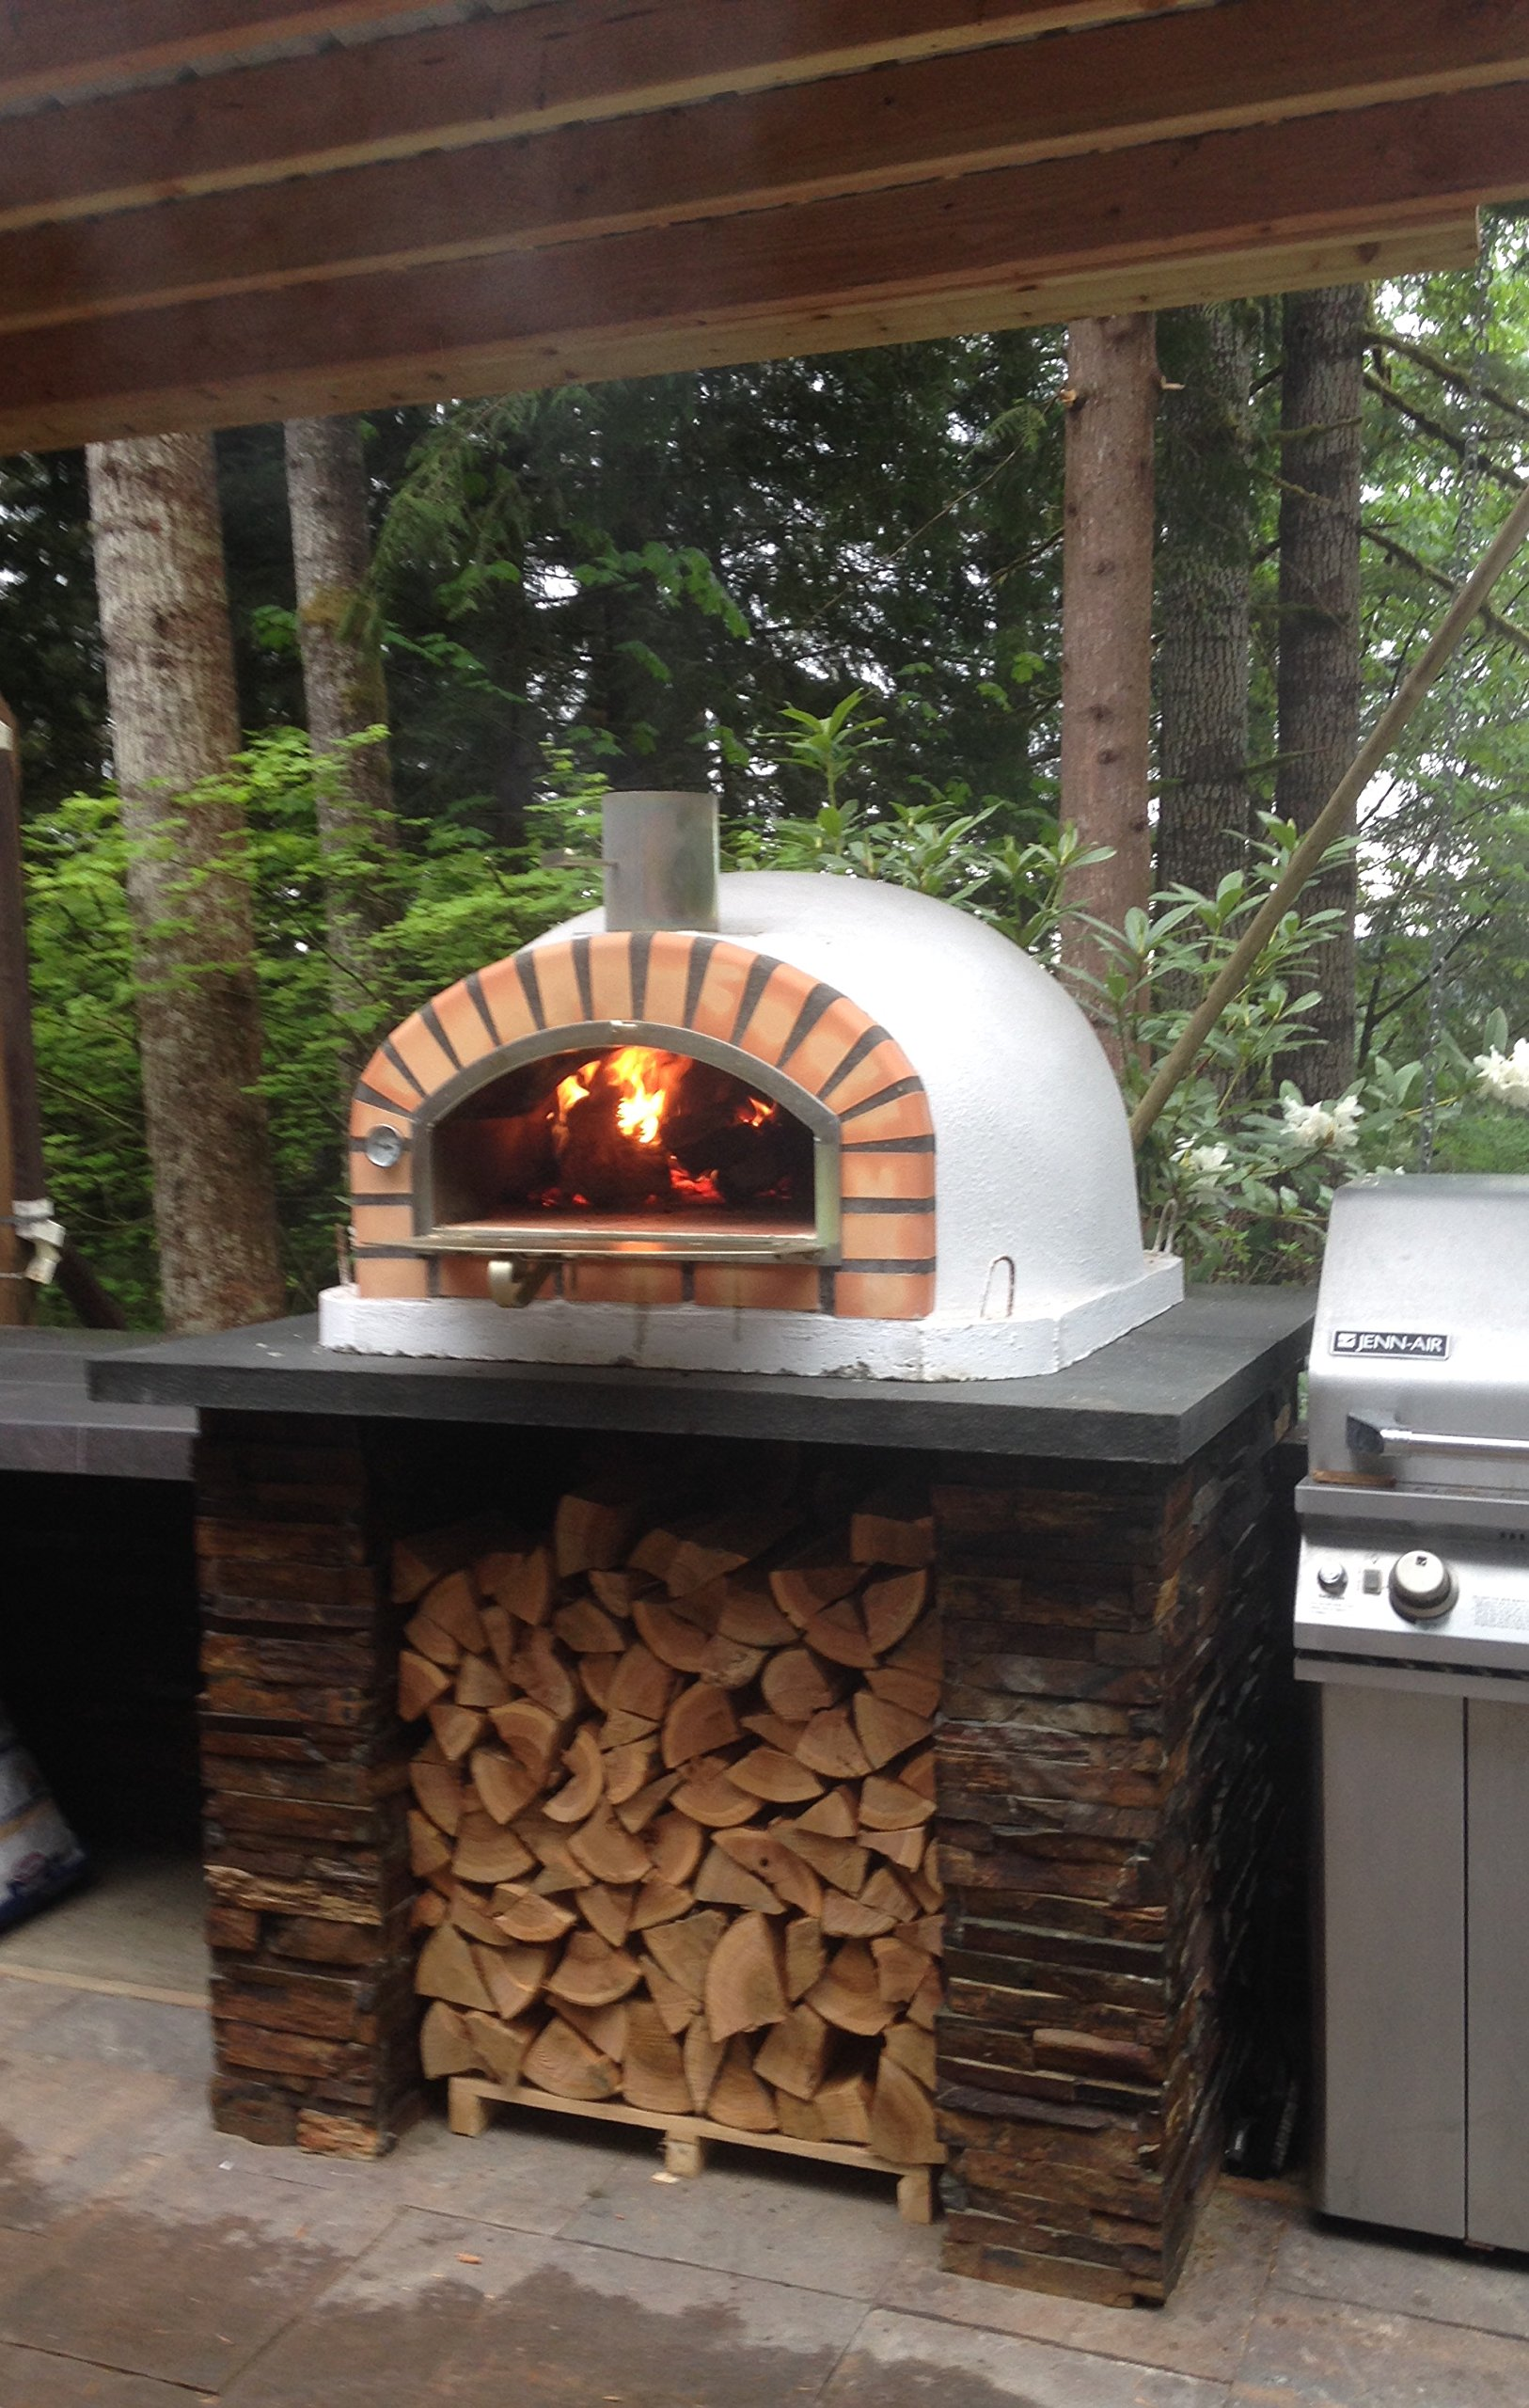 Authentic Pizza Ovens Traditional Brick Pizzaioli Wood ...